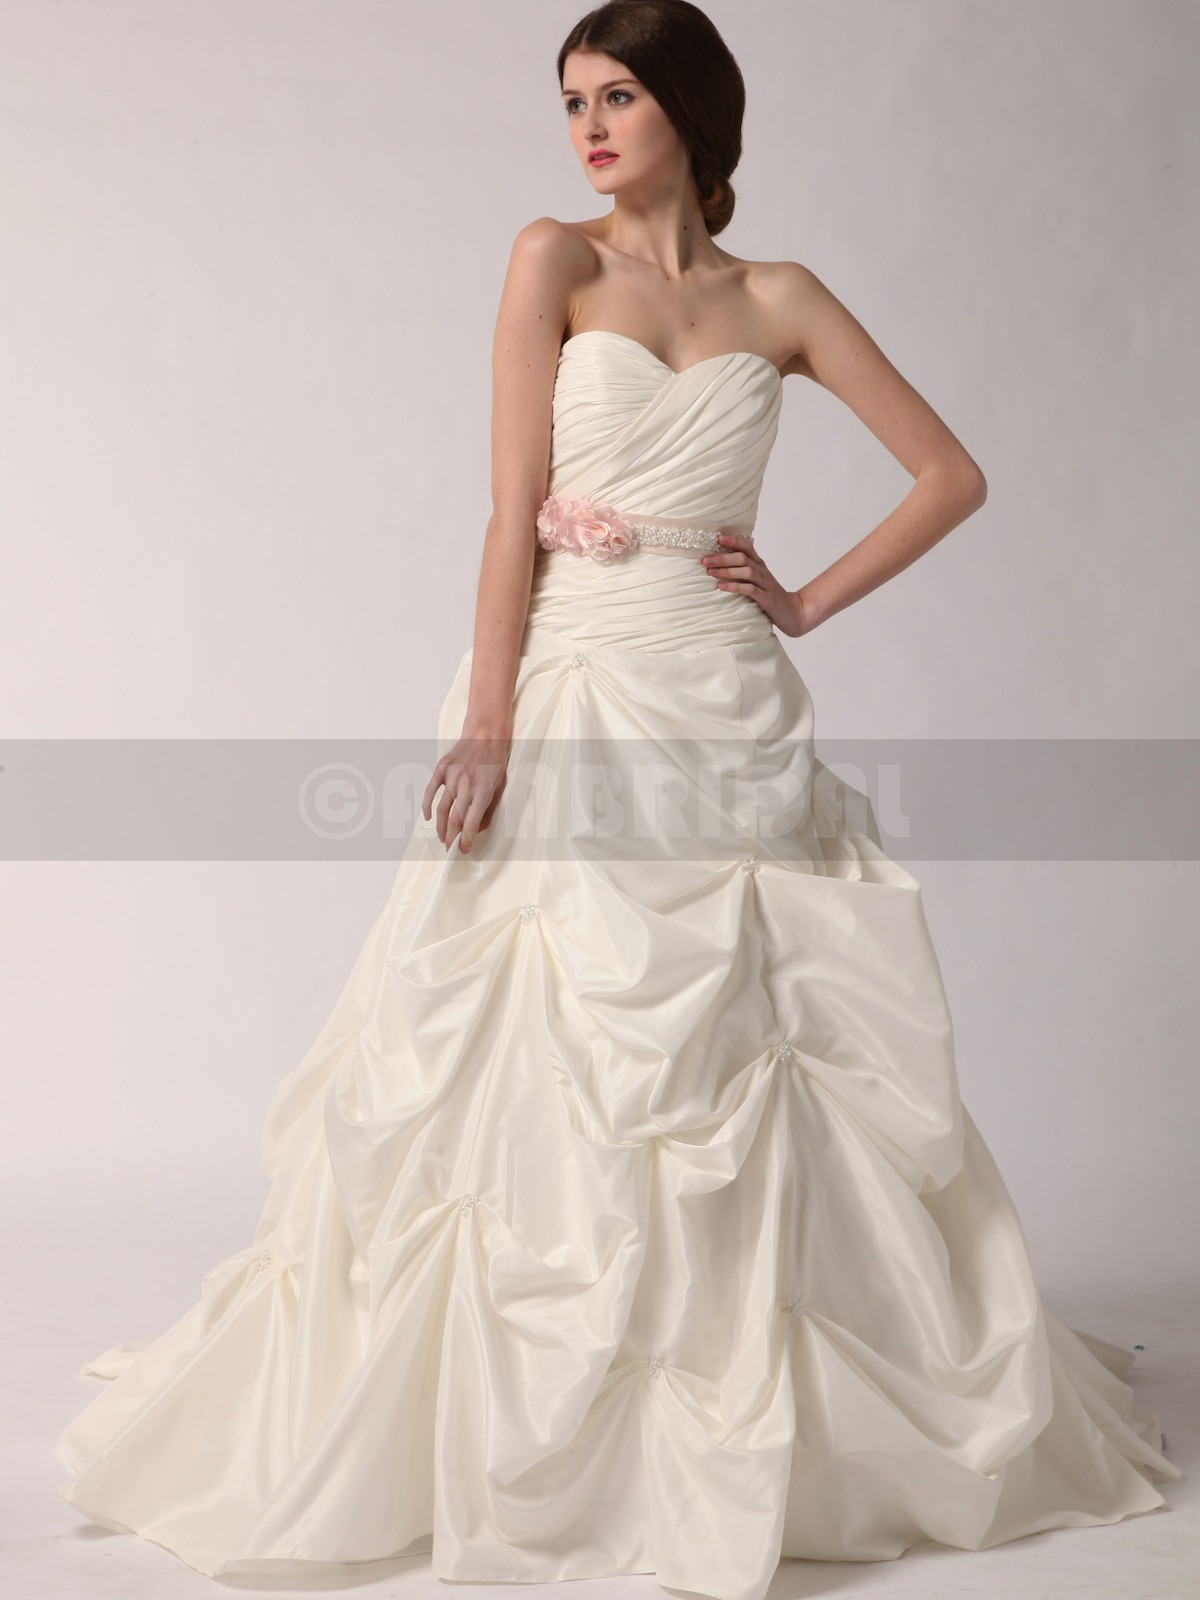 Modern Bridal Gown - Nina - Front